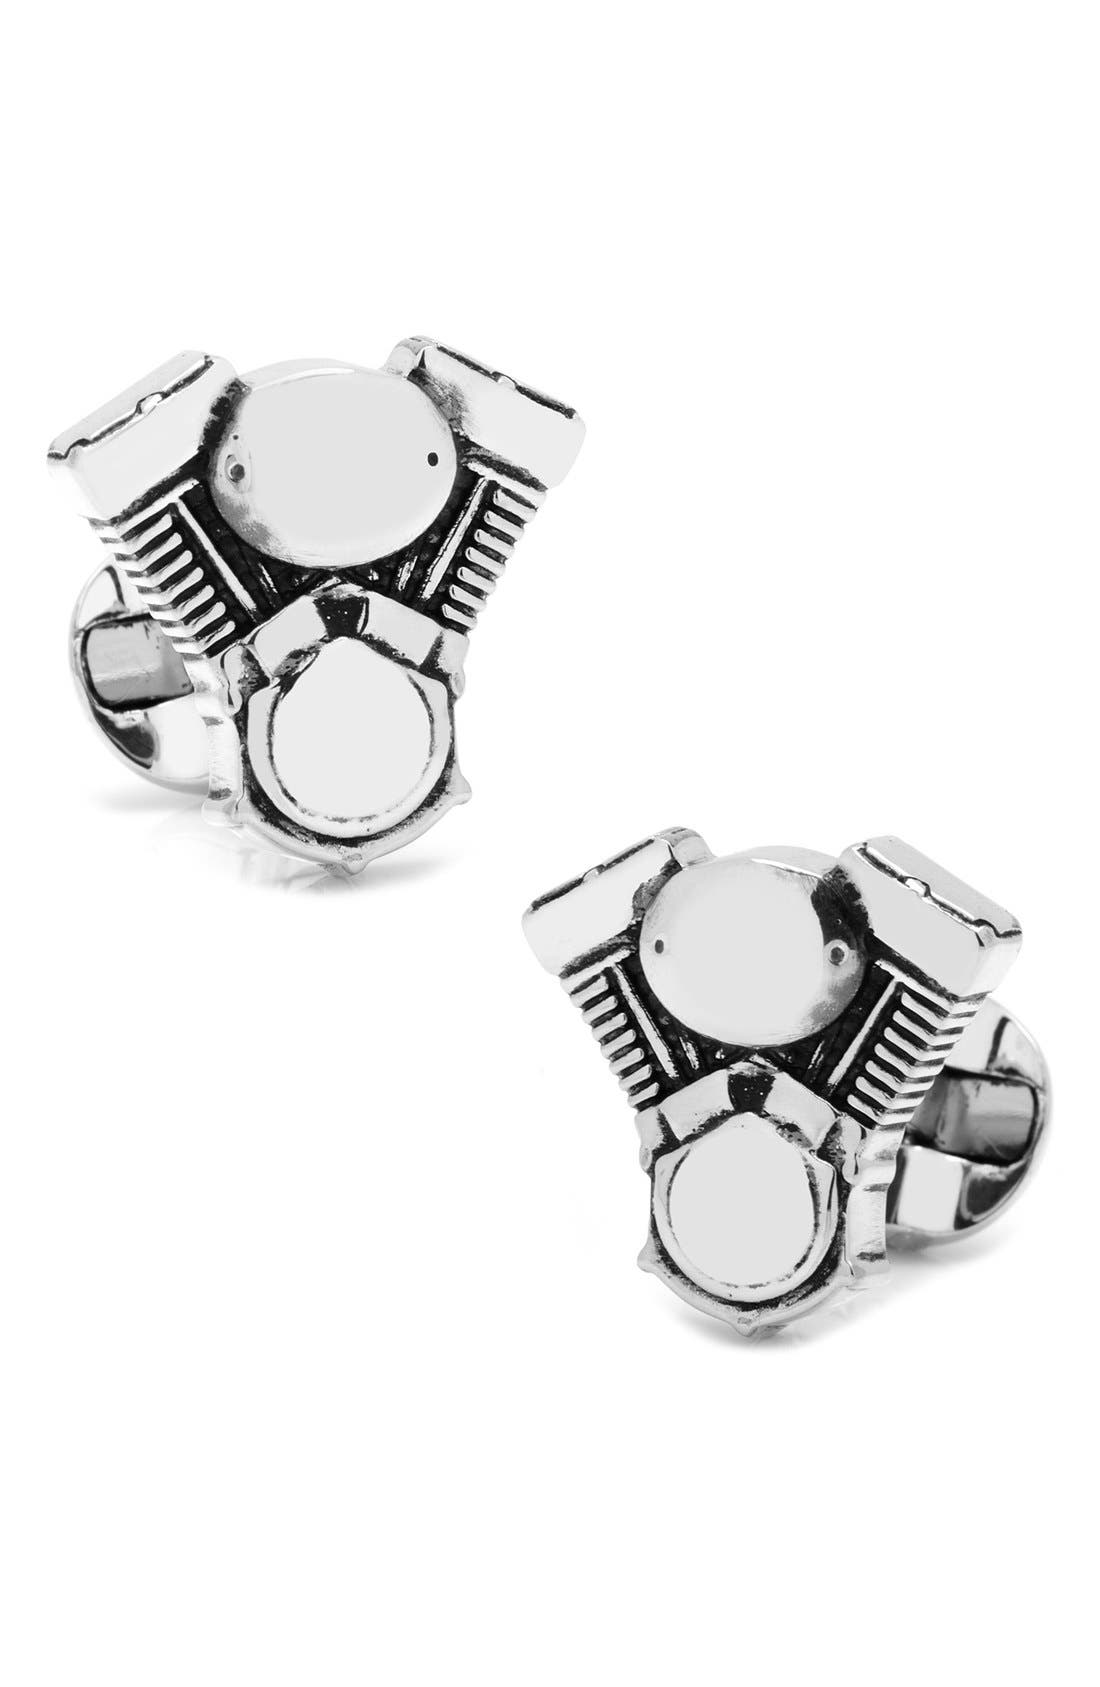 Alternate Image 1 Selected - Ox and Bull Trading Co. V-Twin Motor Cuff Links